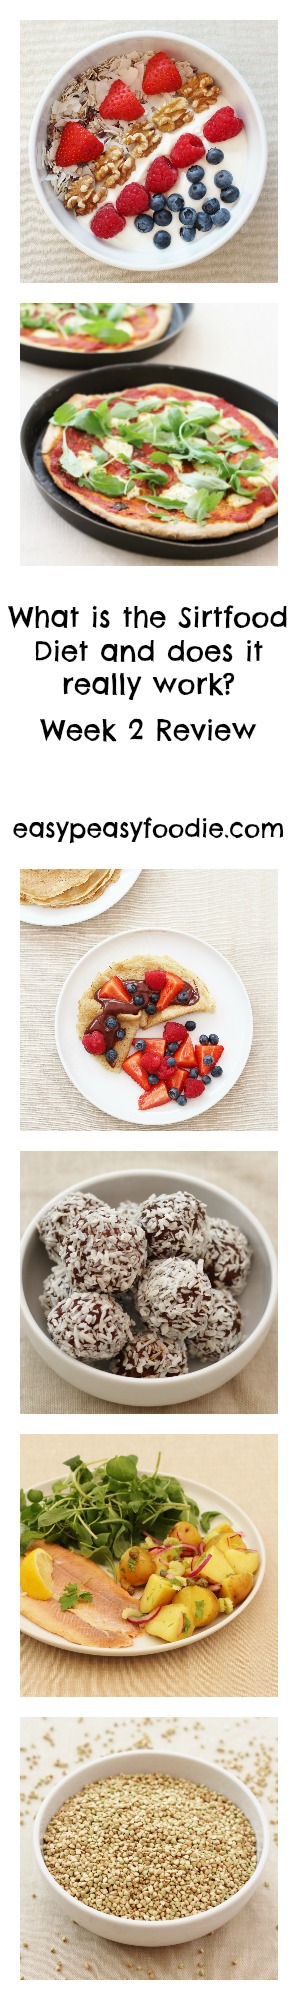 Sirtfood diet Week 2 Review - pinnable image with text for Pinterest